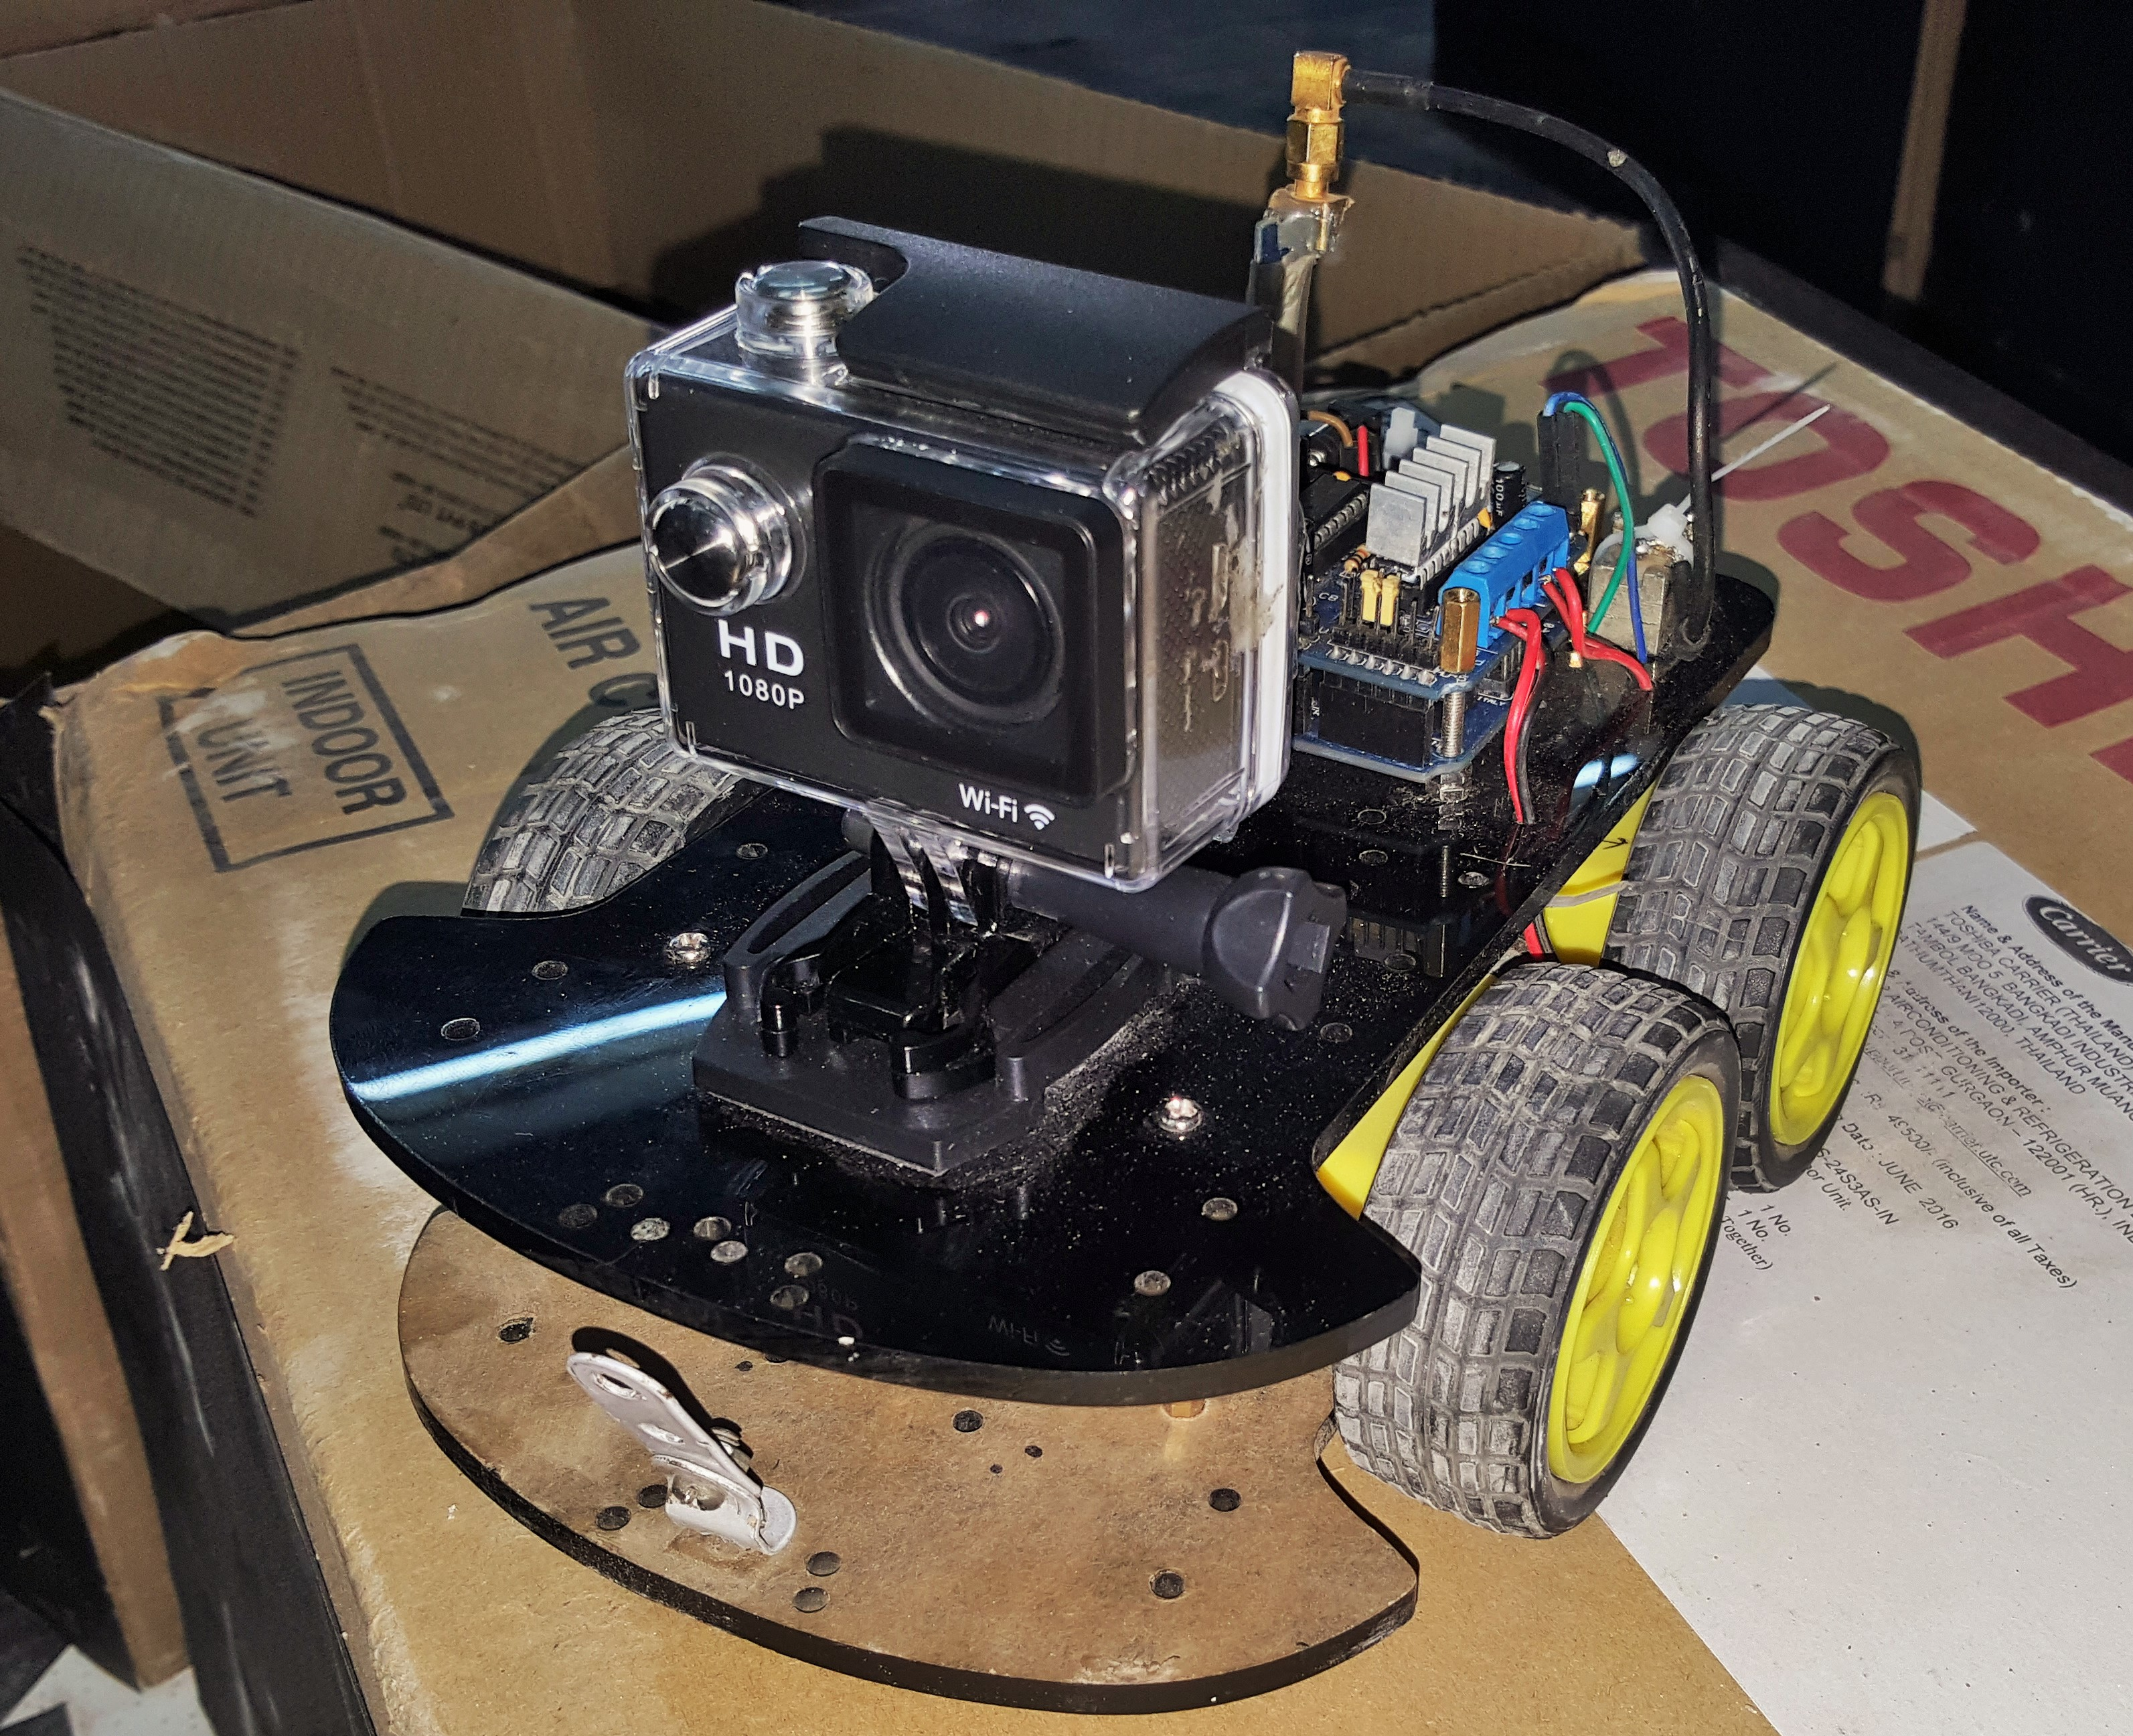 Picture of Mounting the Camera to the Rover/Car